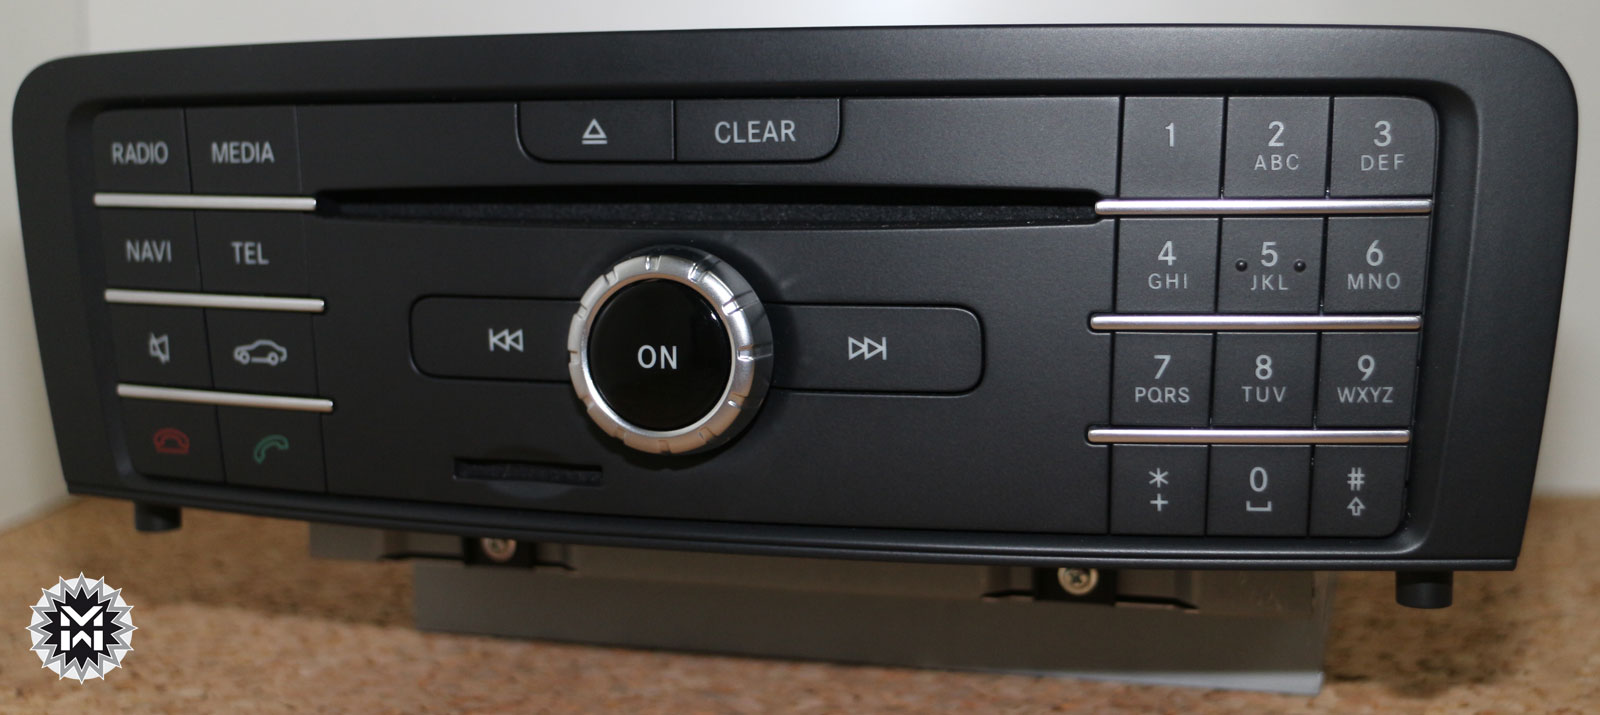 mercedes autoradio radio audio 20 ntg5 navigation cd. Black Bedroom Furniture Sets. Home Design Ideas